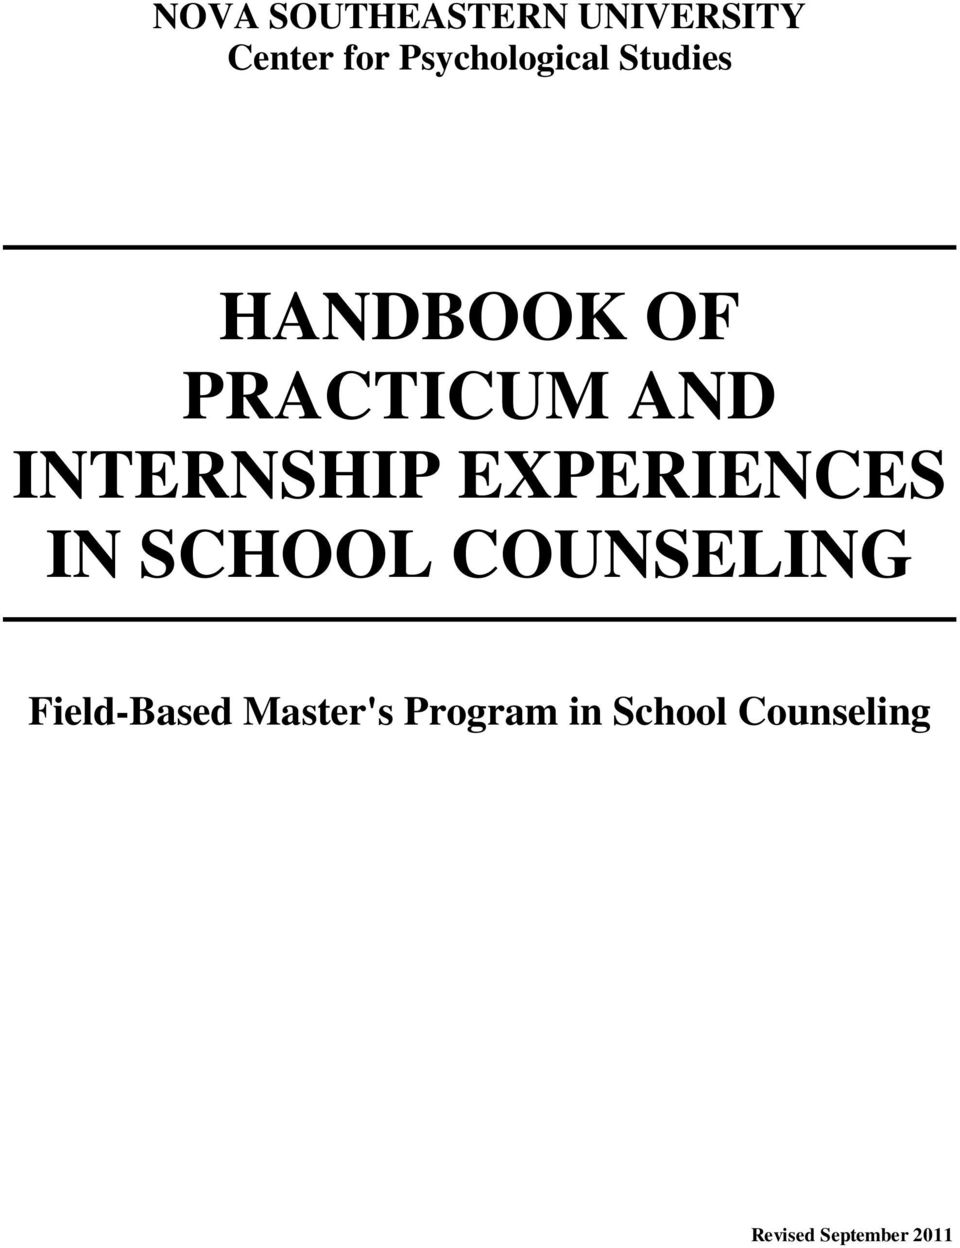 INTERNSHIP EXPERIENCES IN SCHOOL COUNSELING